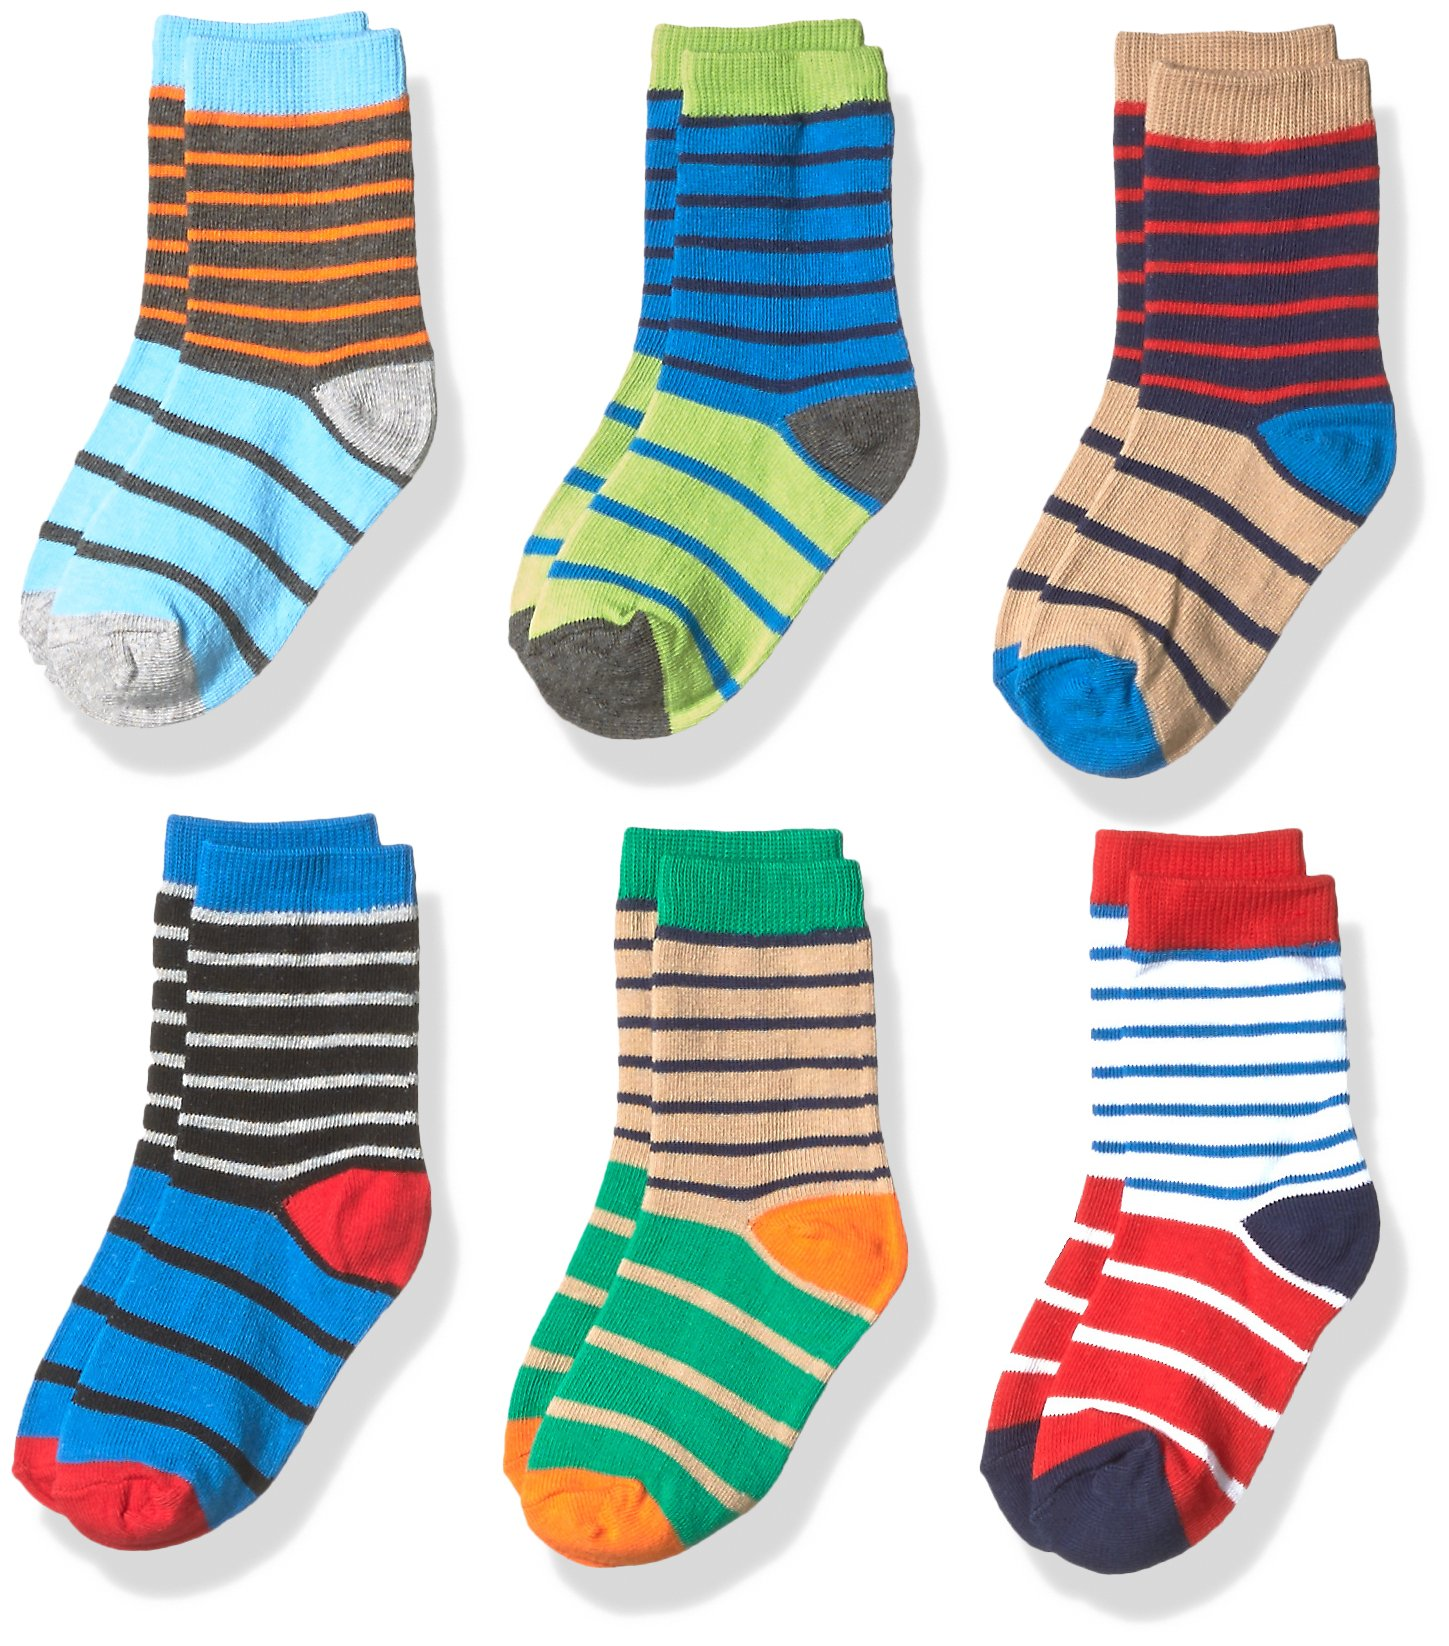 Jefferies Socks Little Boys' Stripe Cotton Crew Socks 6 Pair Pack, Multi, Small